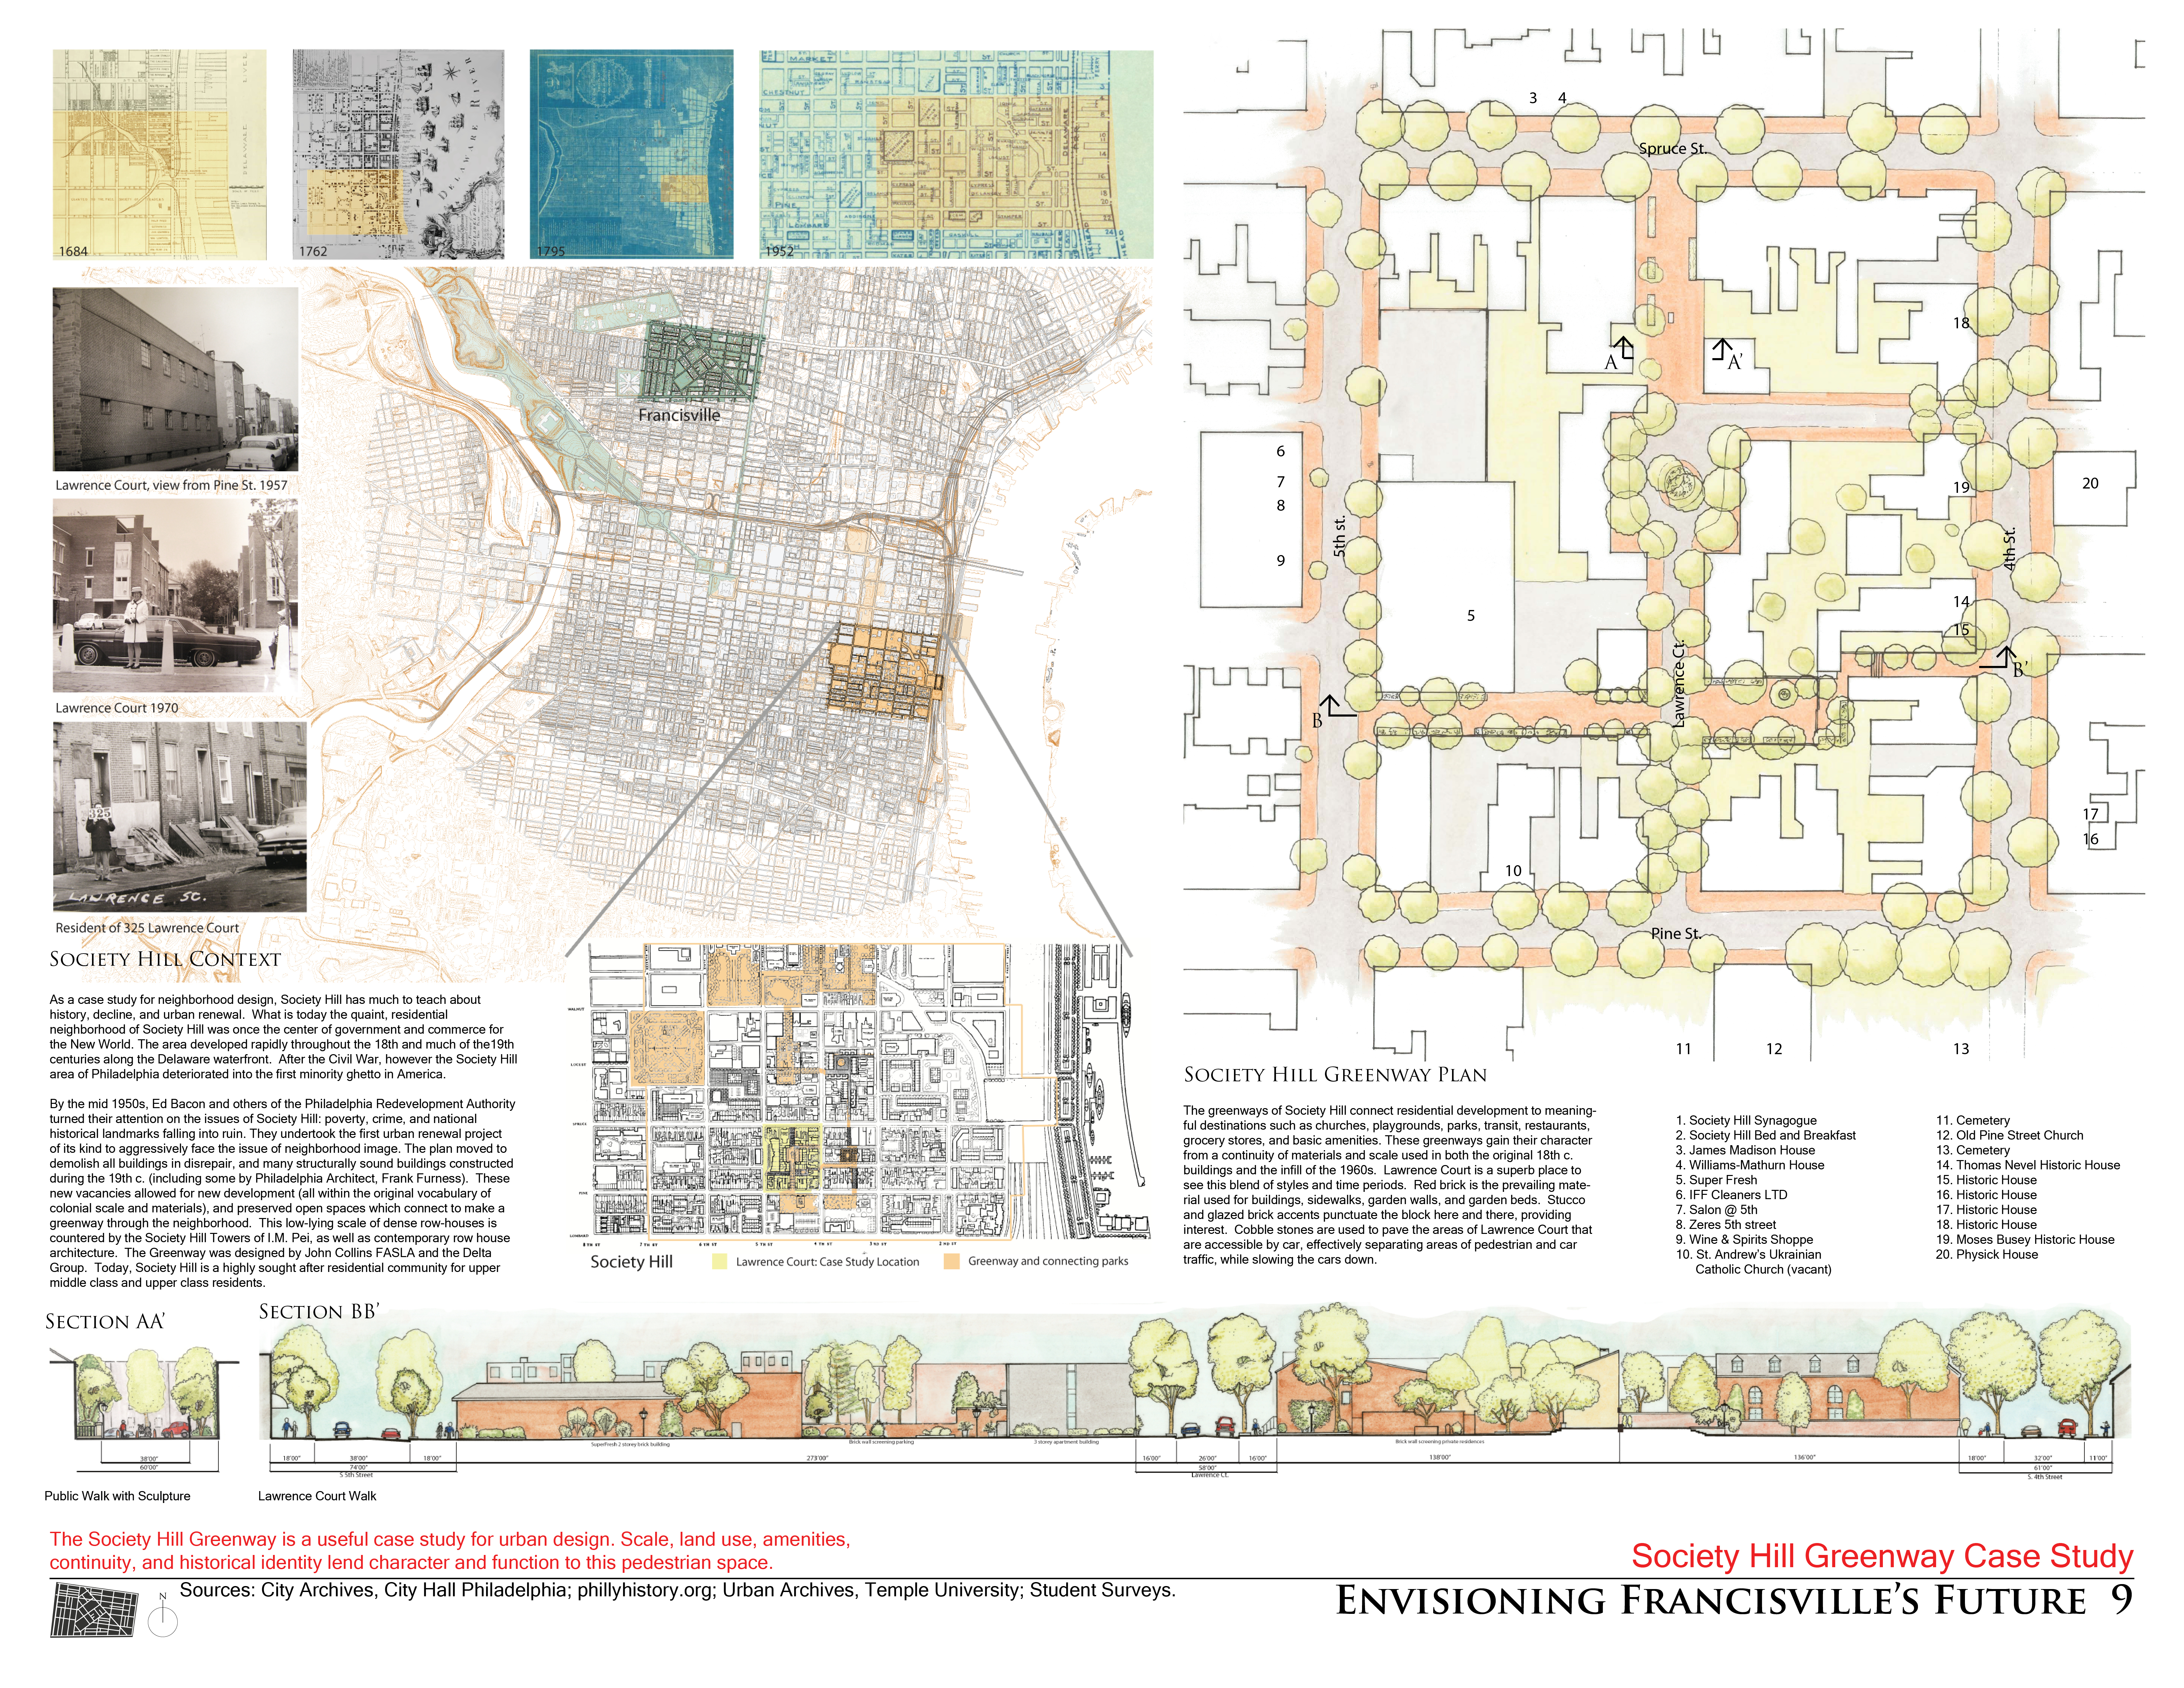 urban renewal case studies How do you create a downtown oasis look no further than nature itself, and look for unconventional urban renewal ideas to implement its timeless processes.